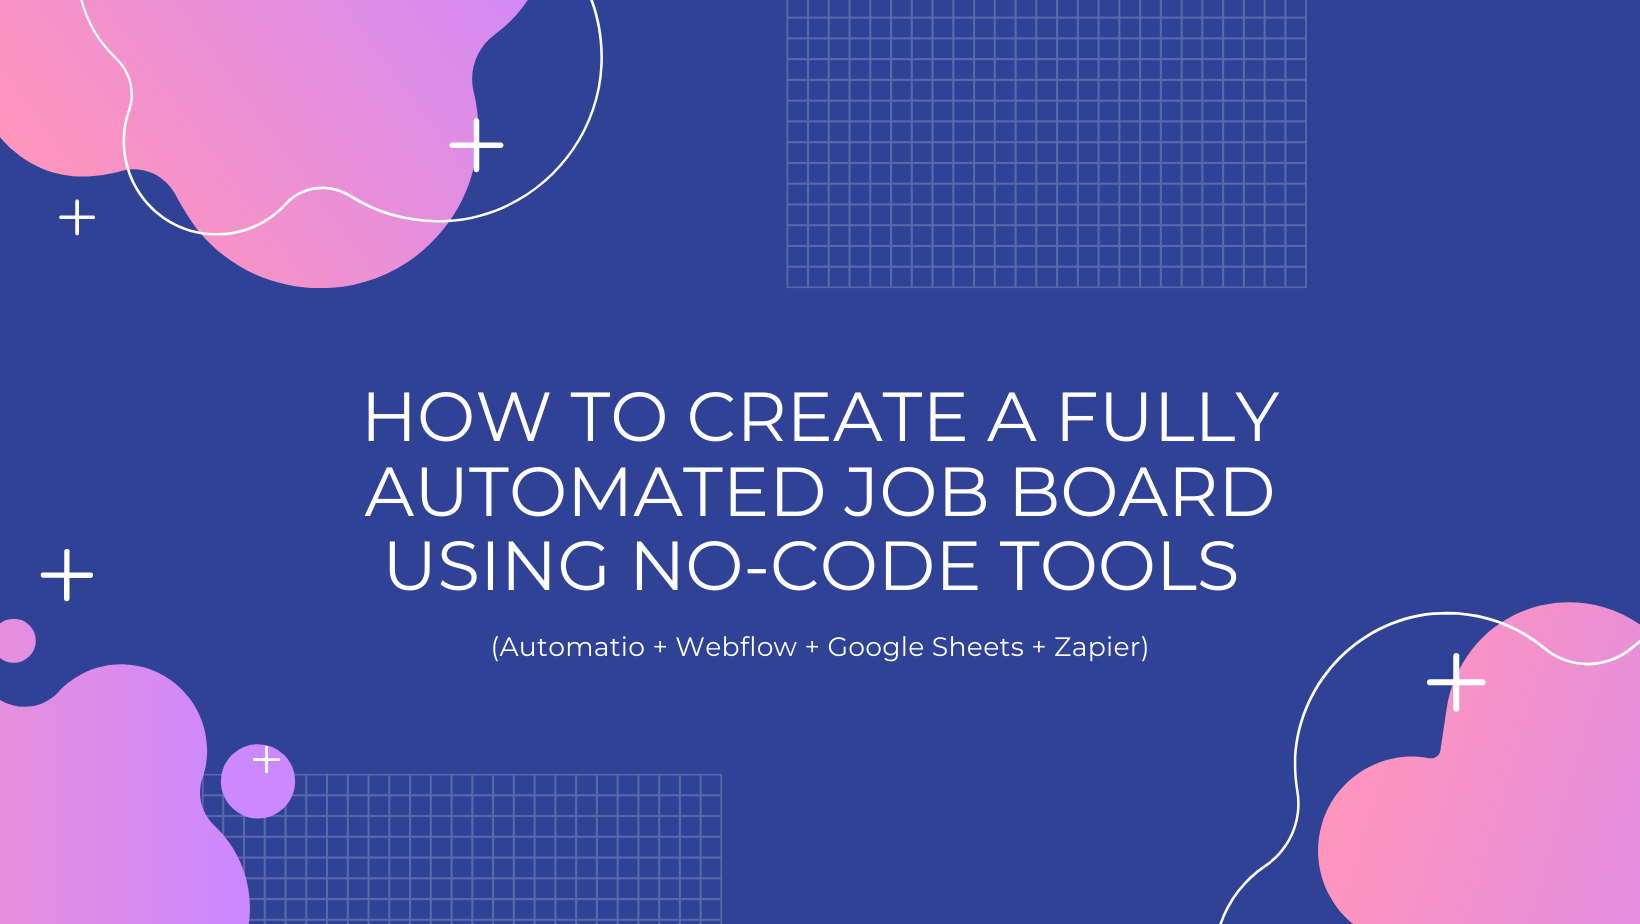 How to create a fully automated job board using no-code tools (Automatio + Webflow + Google Sheets + Zapier)